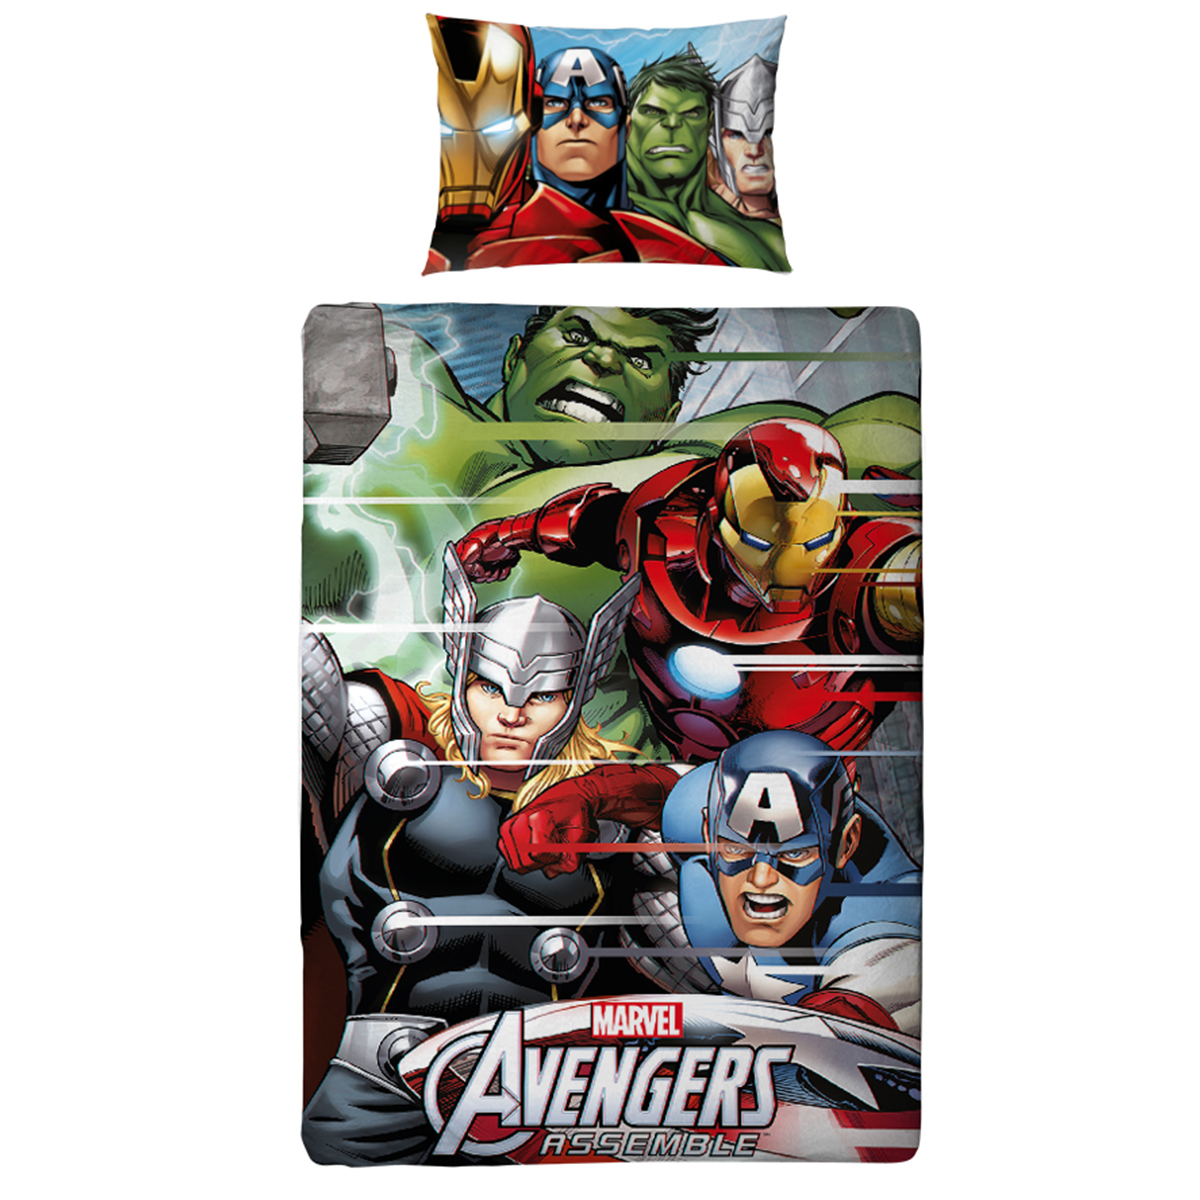 housse de couette marvel avengers team 3d parure de lit. Black Bedroom Furniture Sets. Home Design Ideas